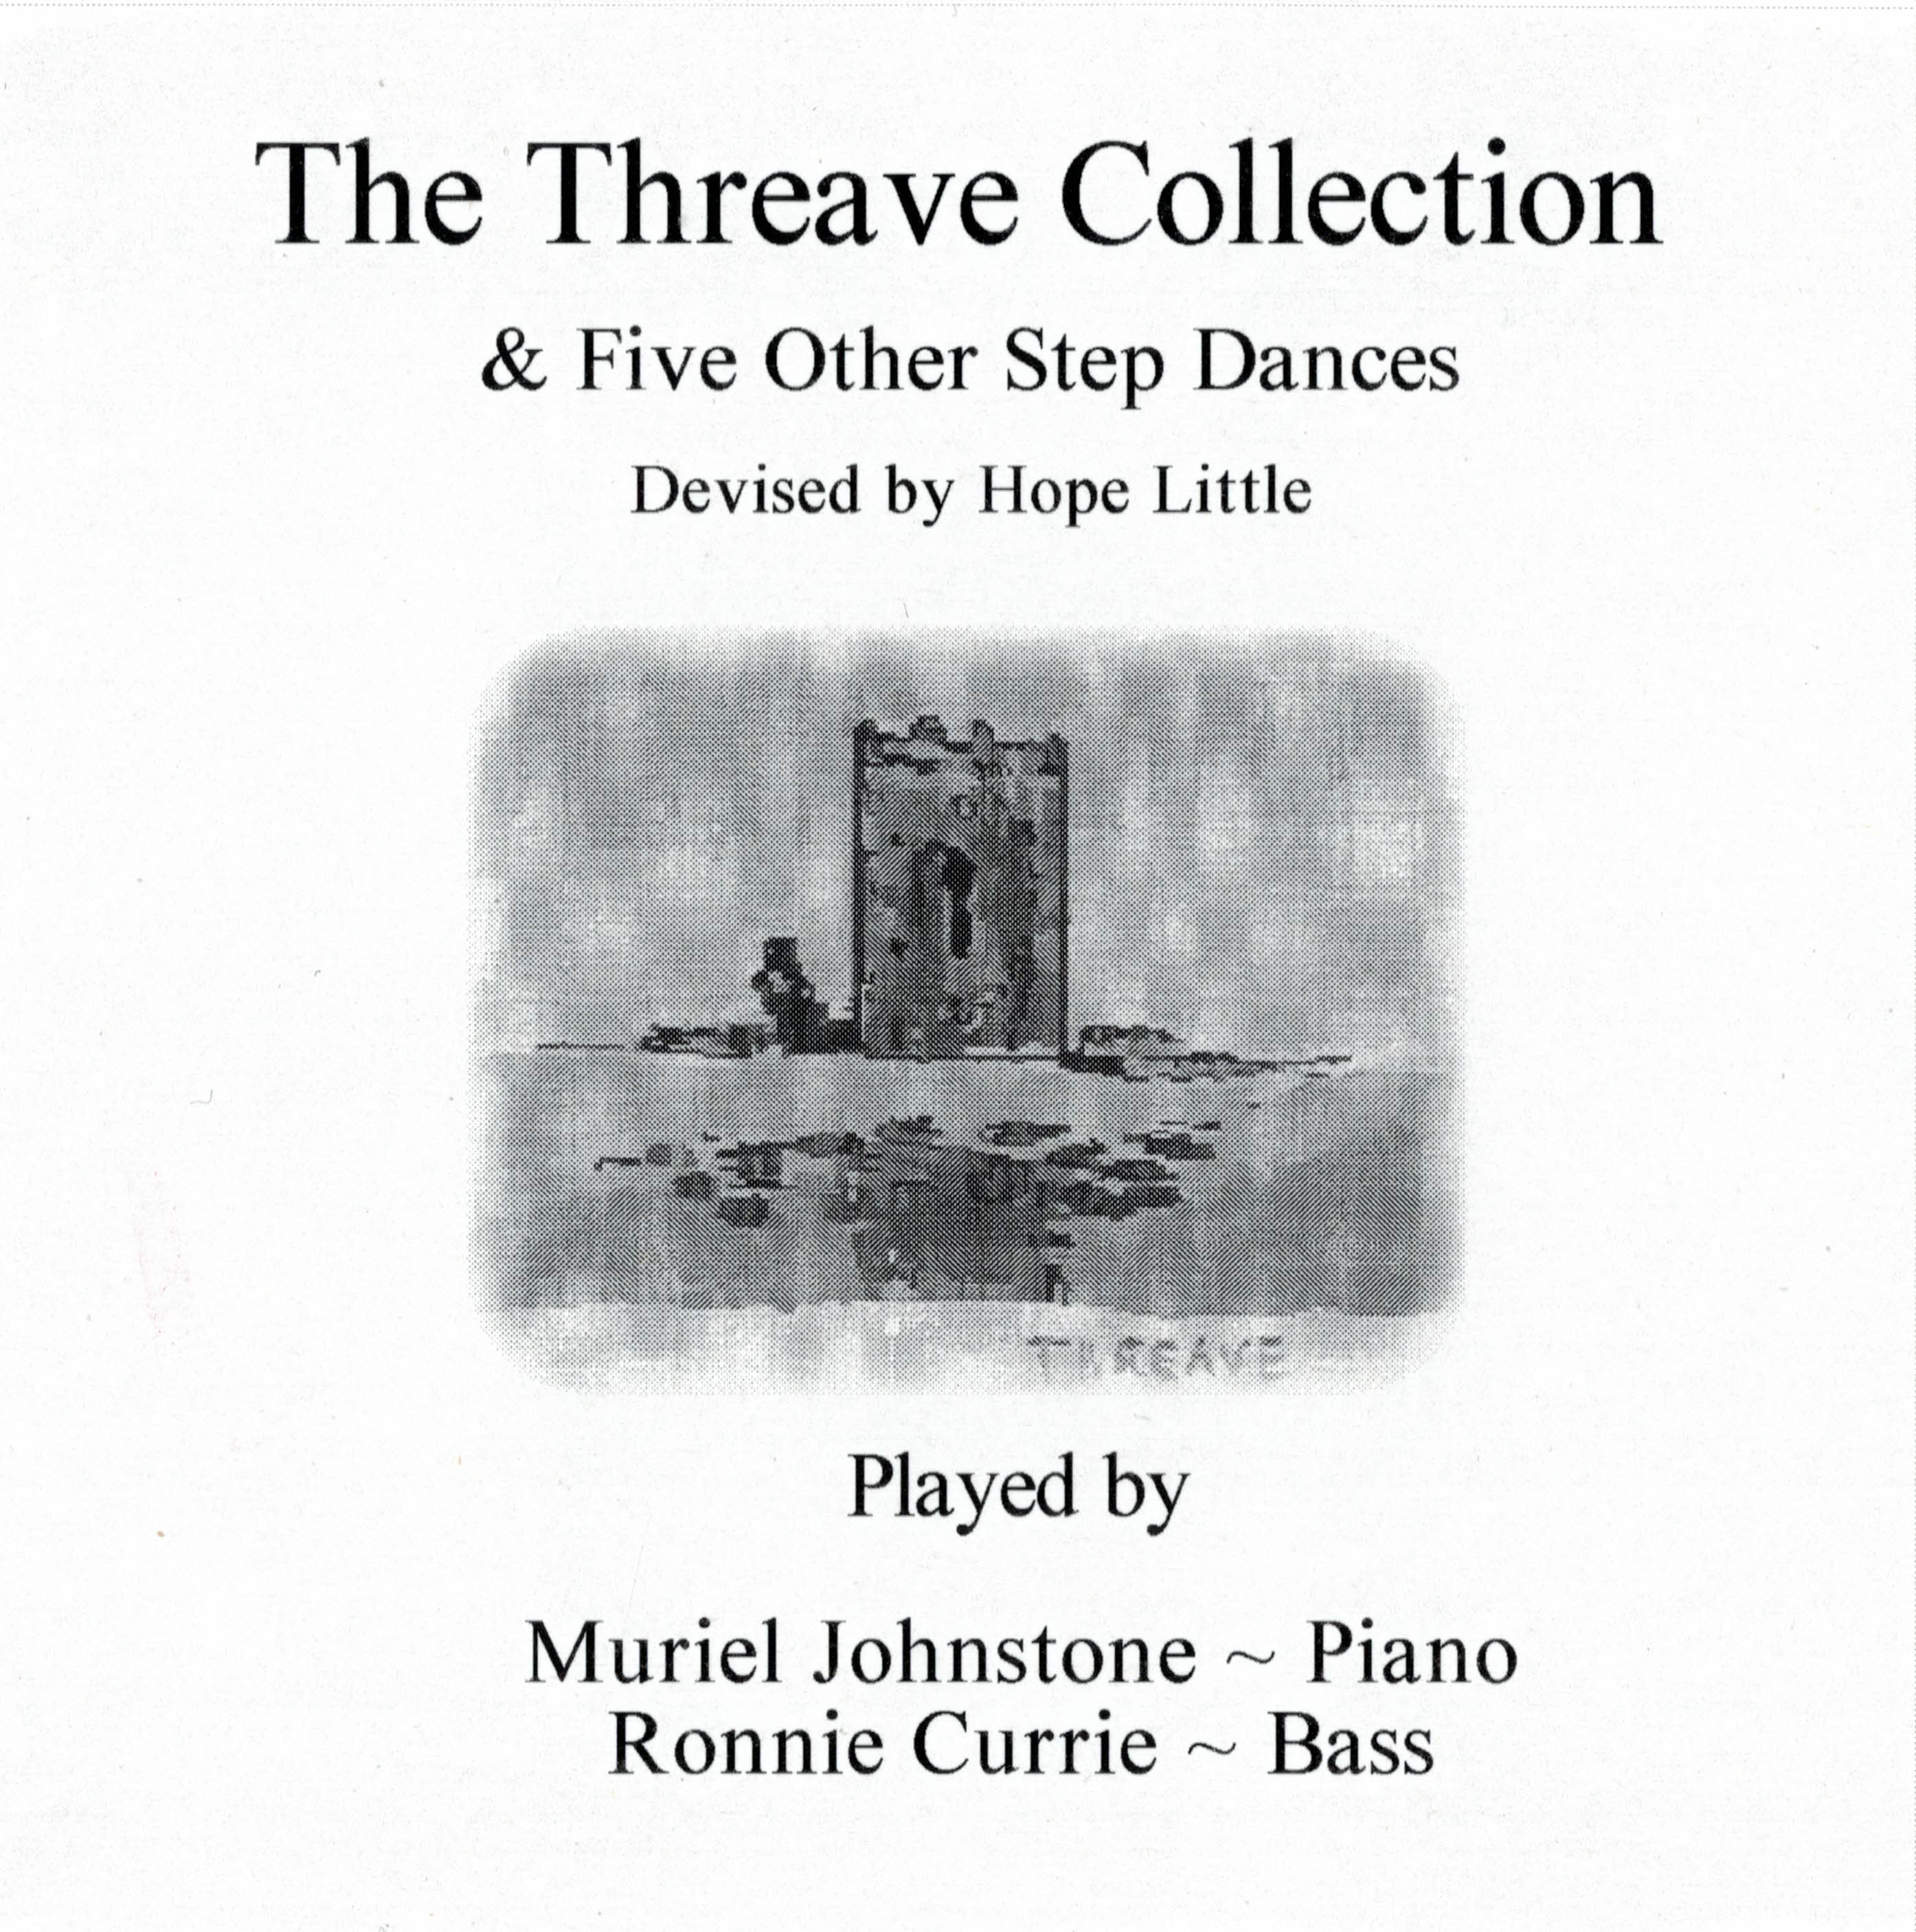 The Threave Collection